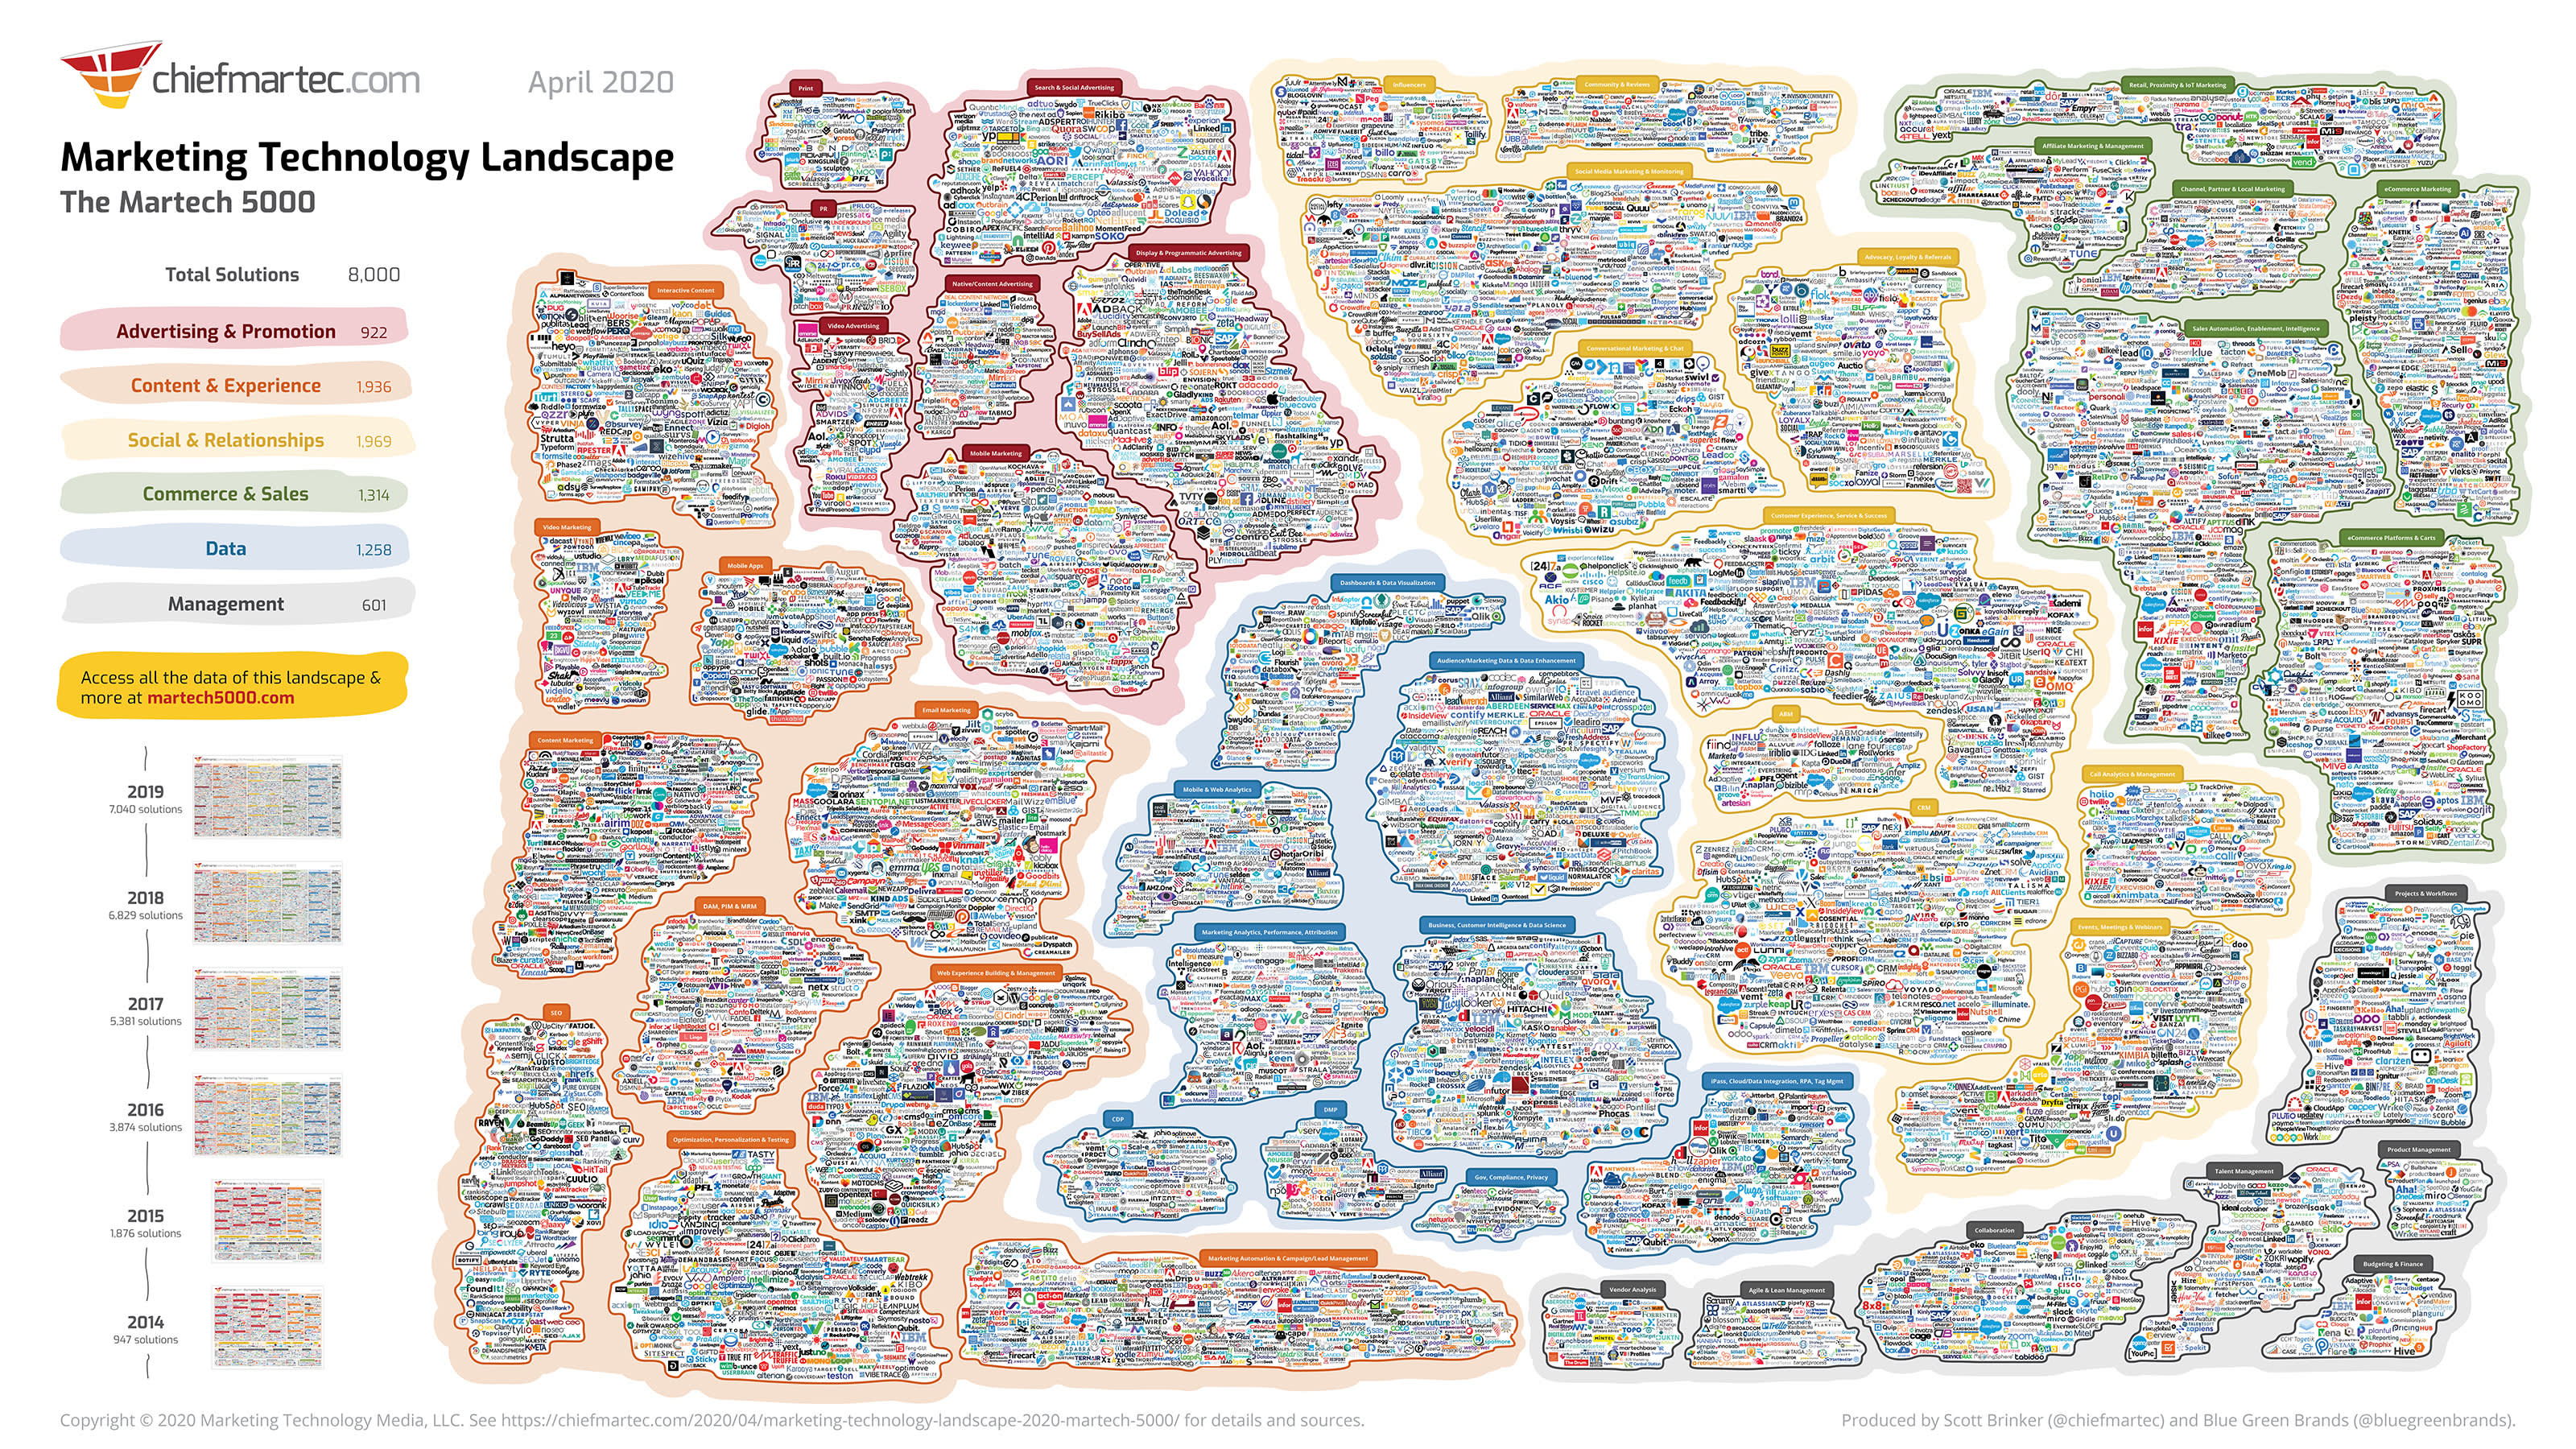 Montage packed with thousands of microscopic logos of the companies that specialize in some discipline of marketing, from chiefmartec.com